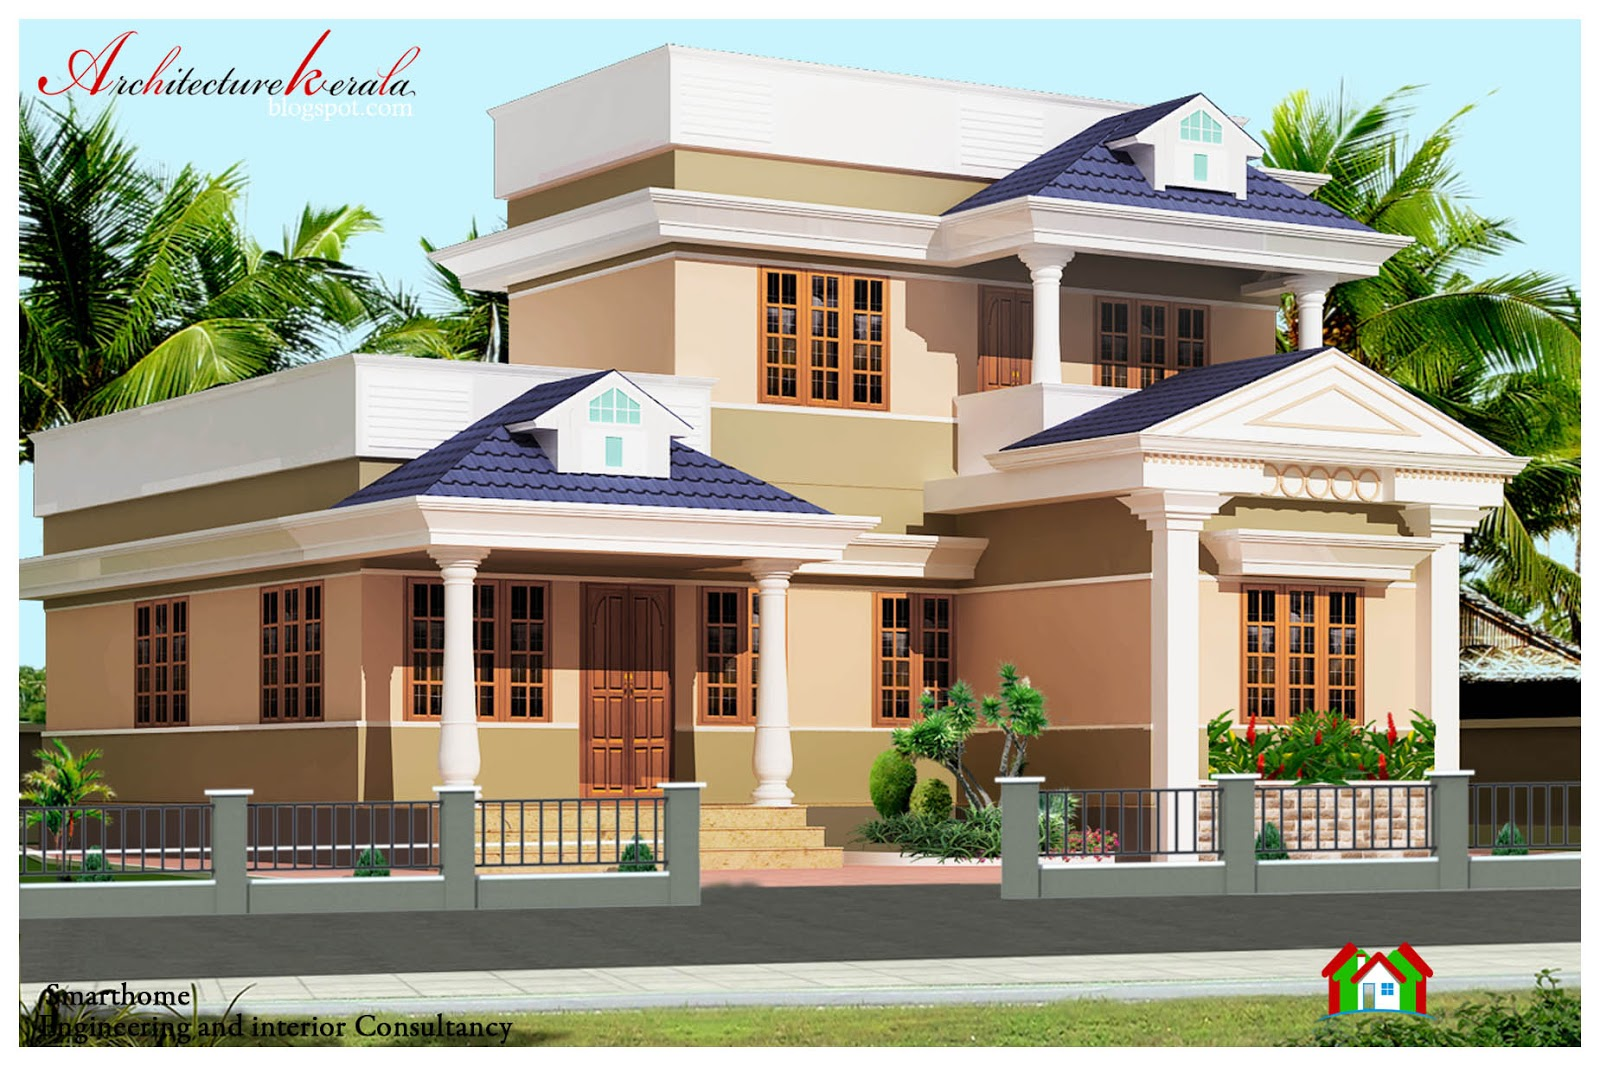 Architecture kerala 1000 sq ft kerala style house plan for House designs kerala style low cost